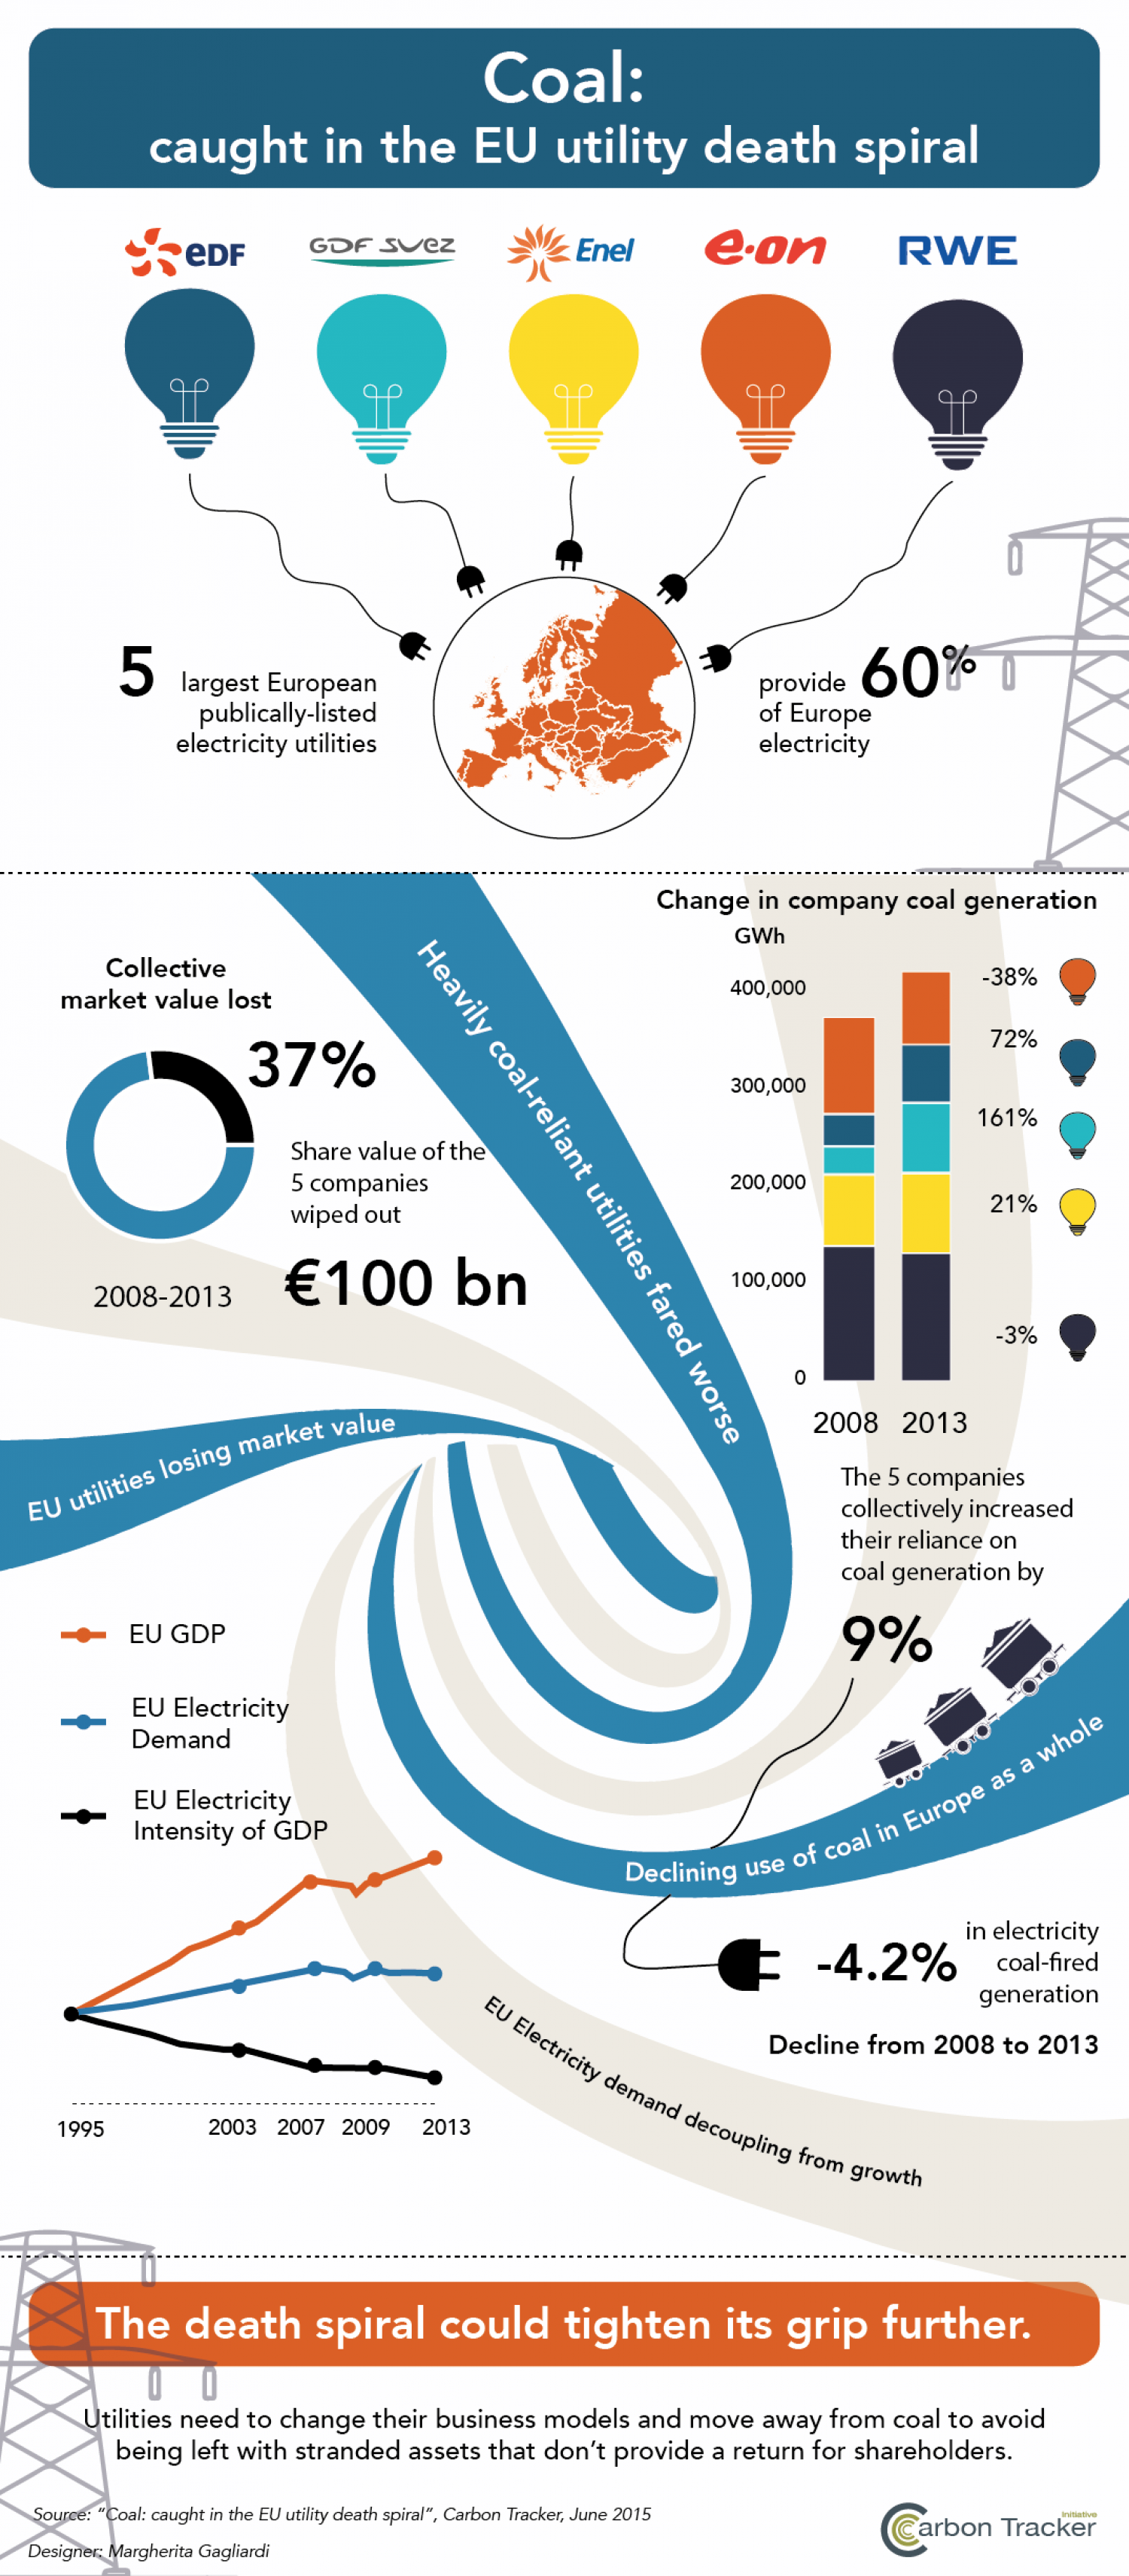 Coal: caught in EU utility death spiral Infographic